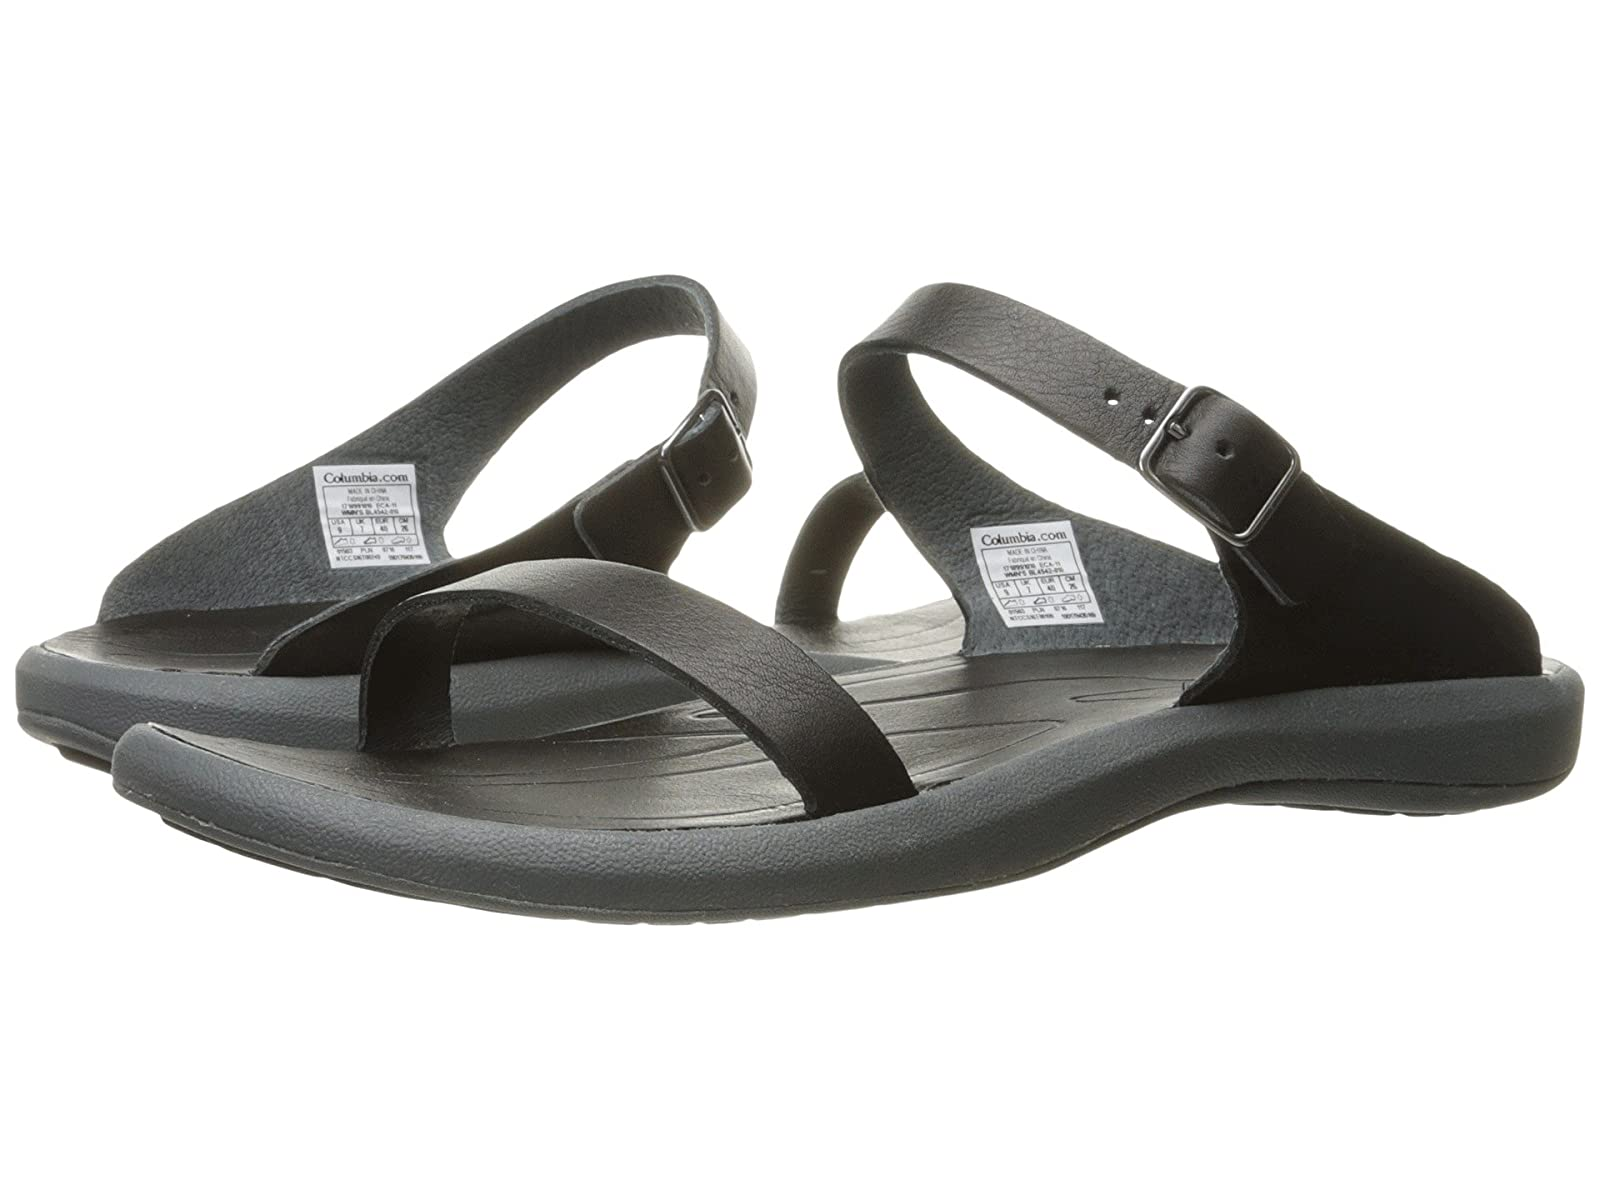 Columbia Caprizee Leather SlideCheap and distinctive eye-catching shoes